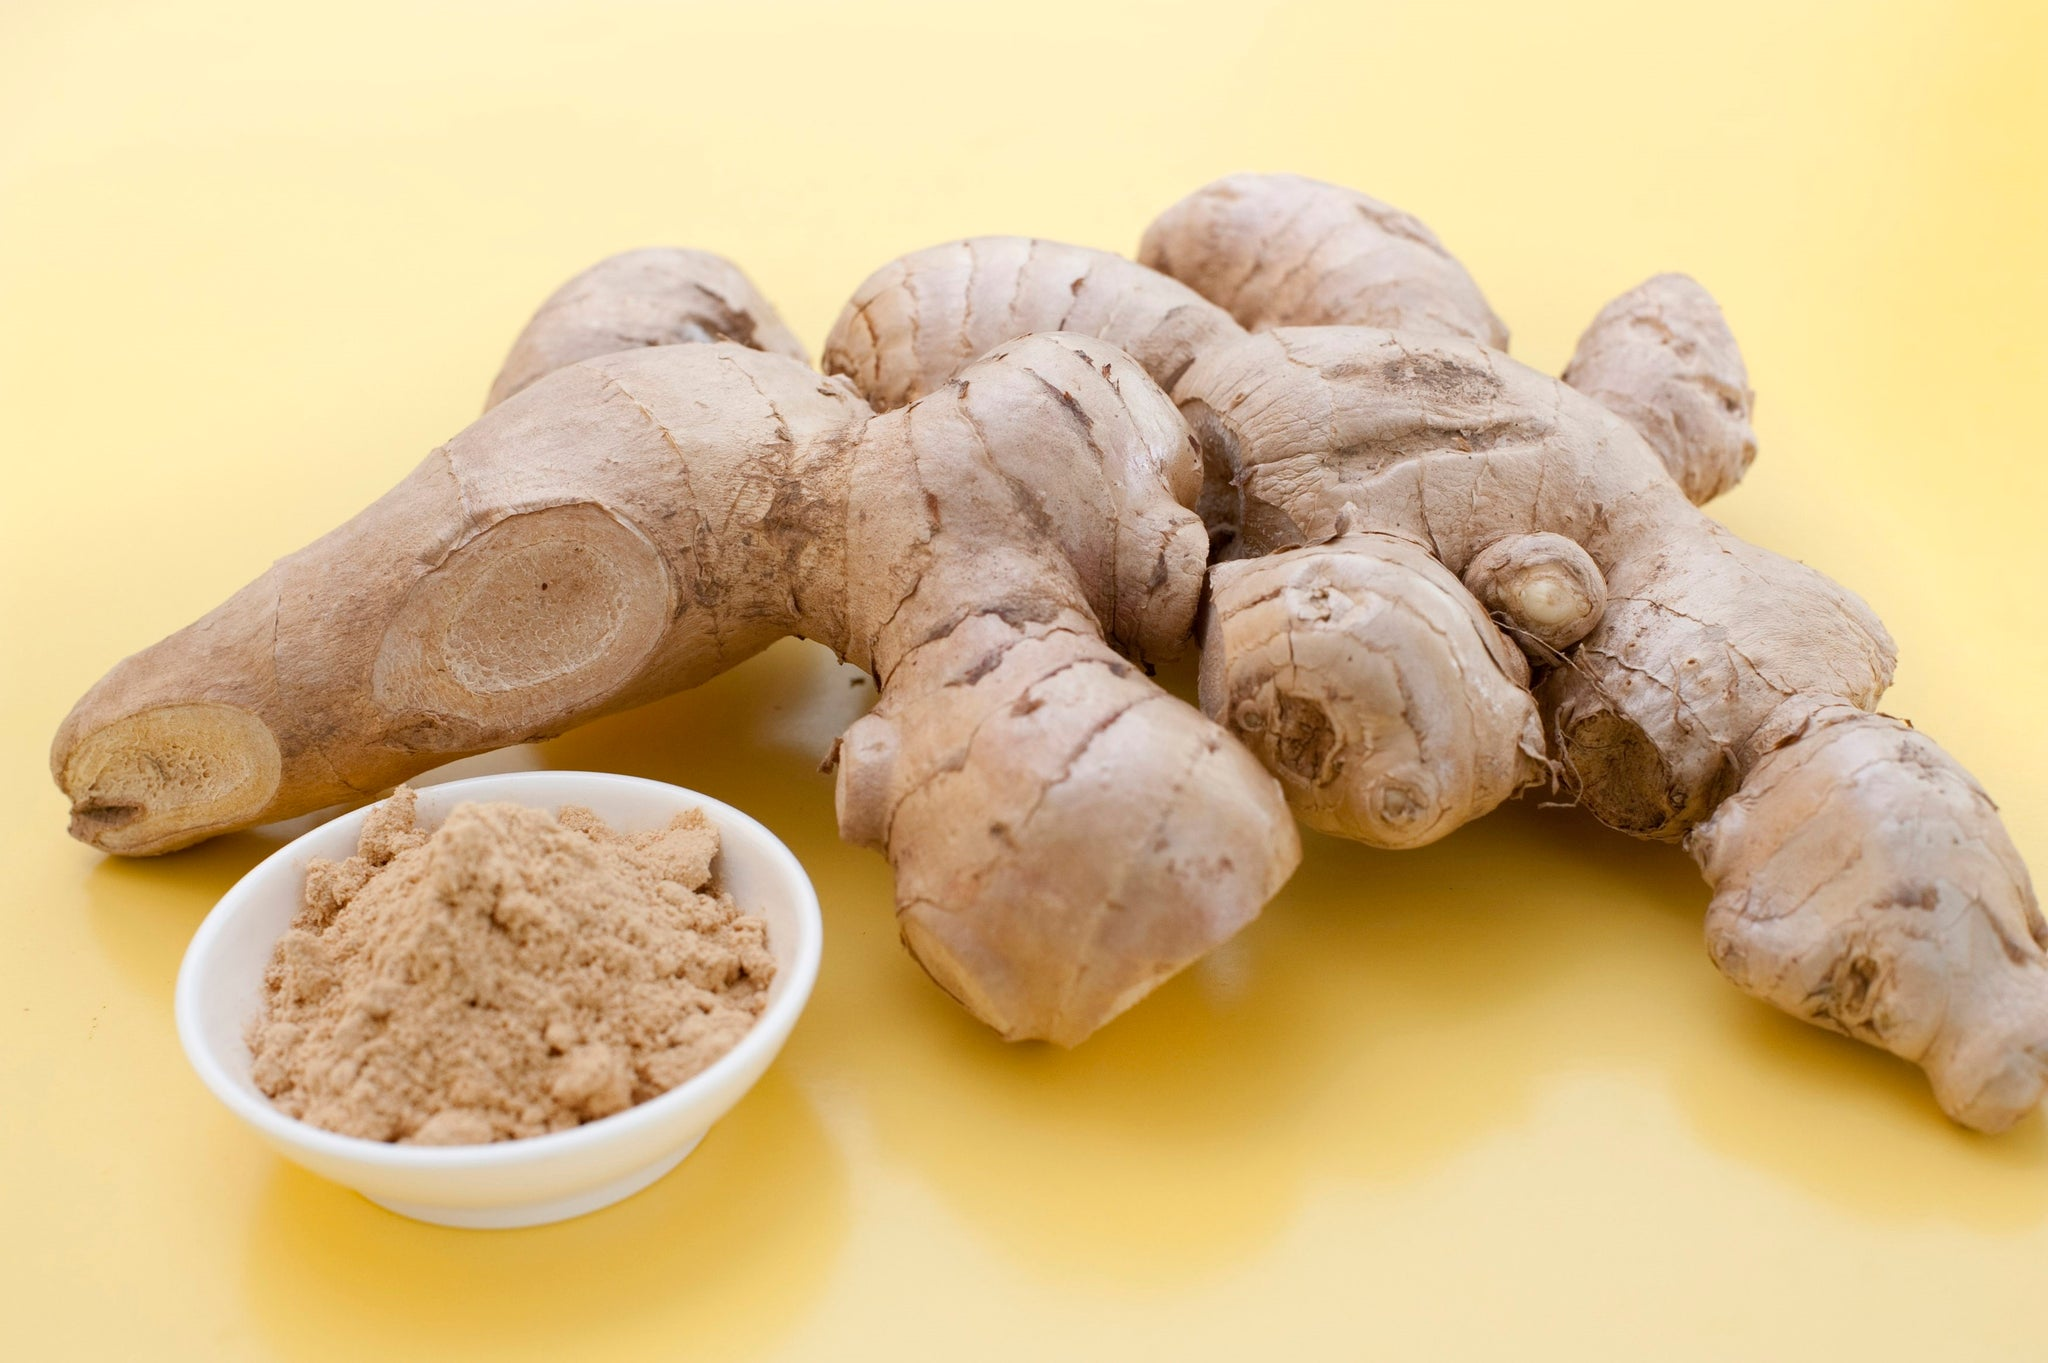 Ginger Root for heart health, Acne, Anti- Aging and Mood Boosting? Yes!